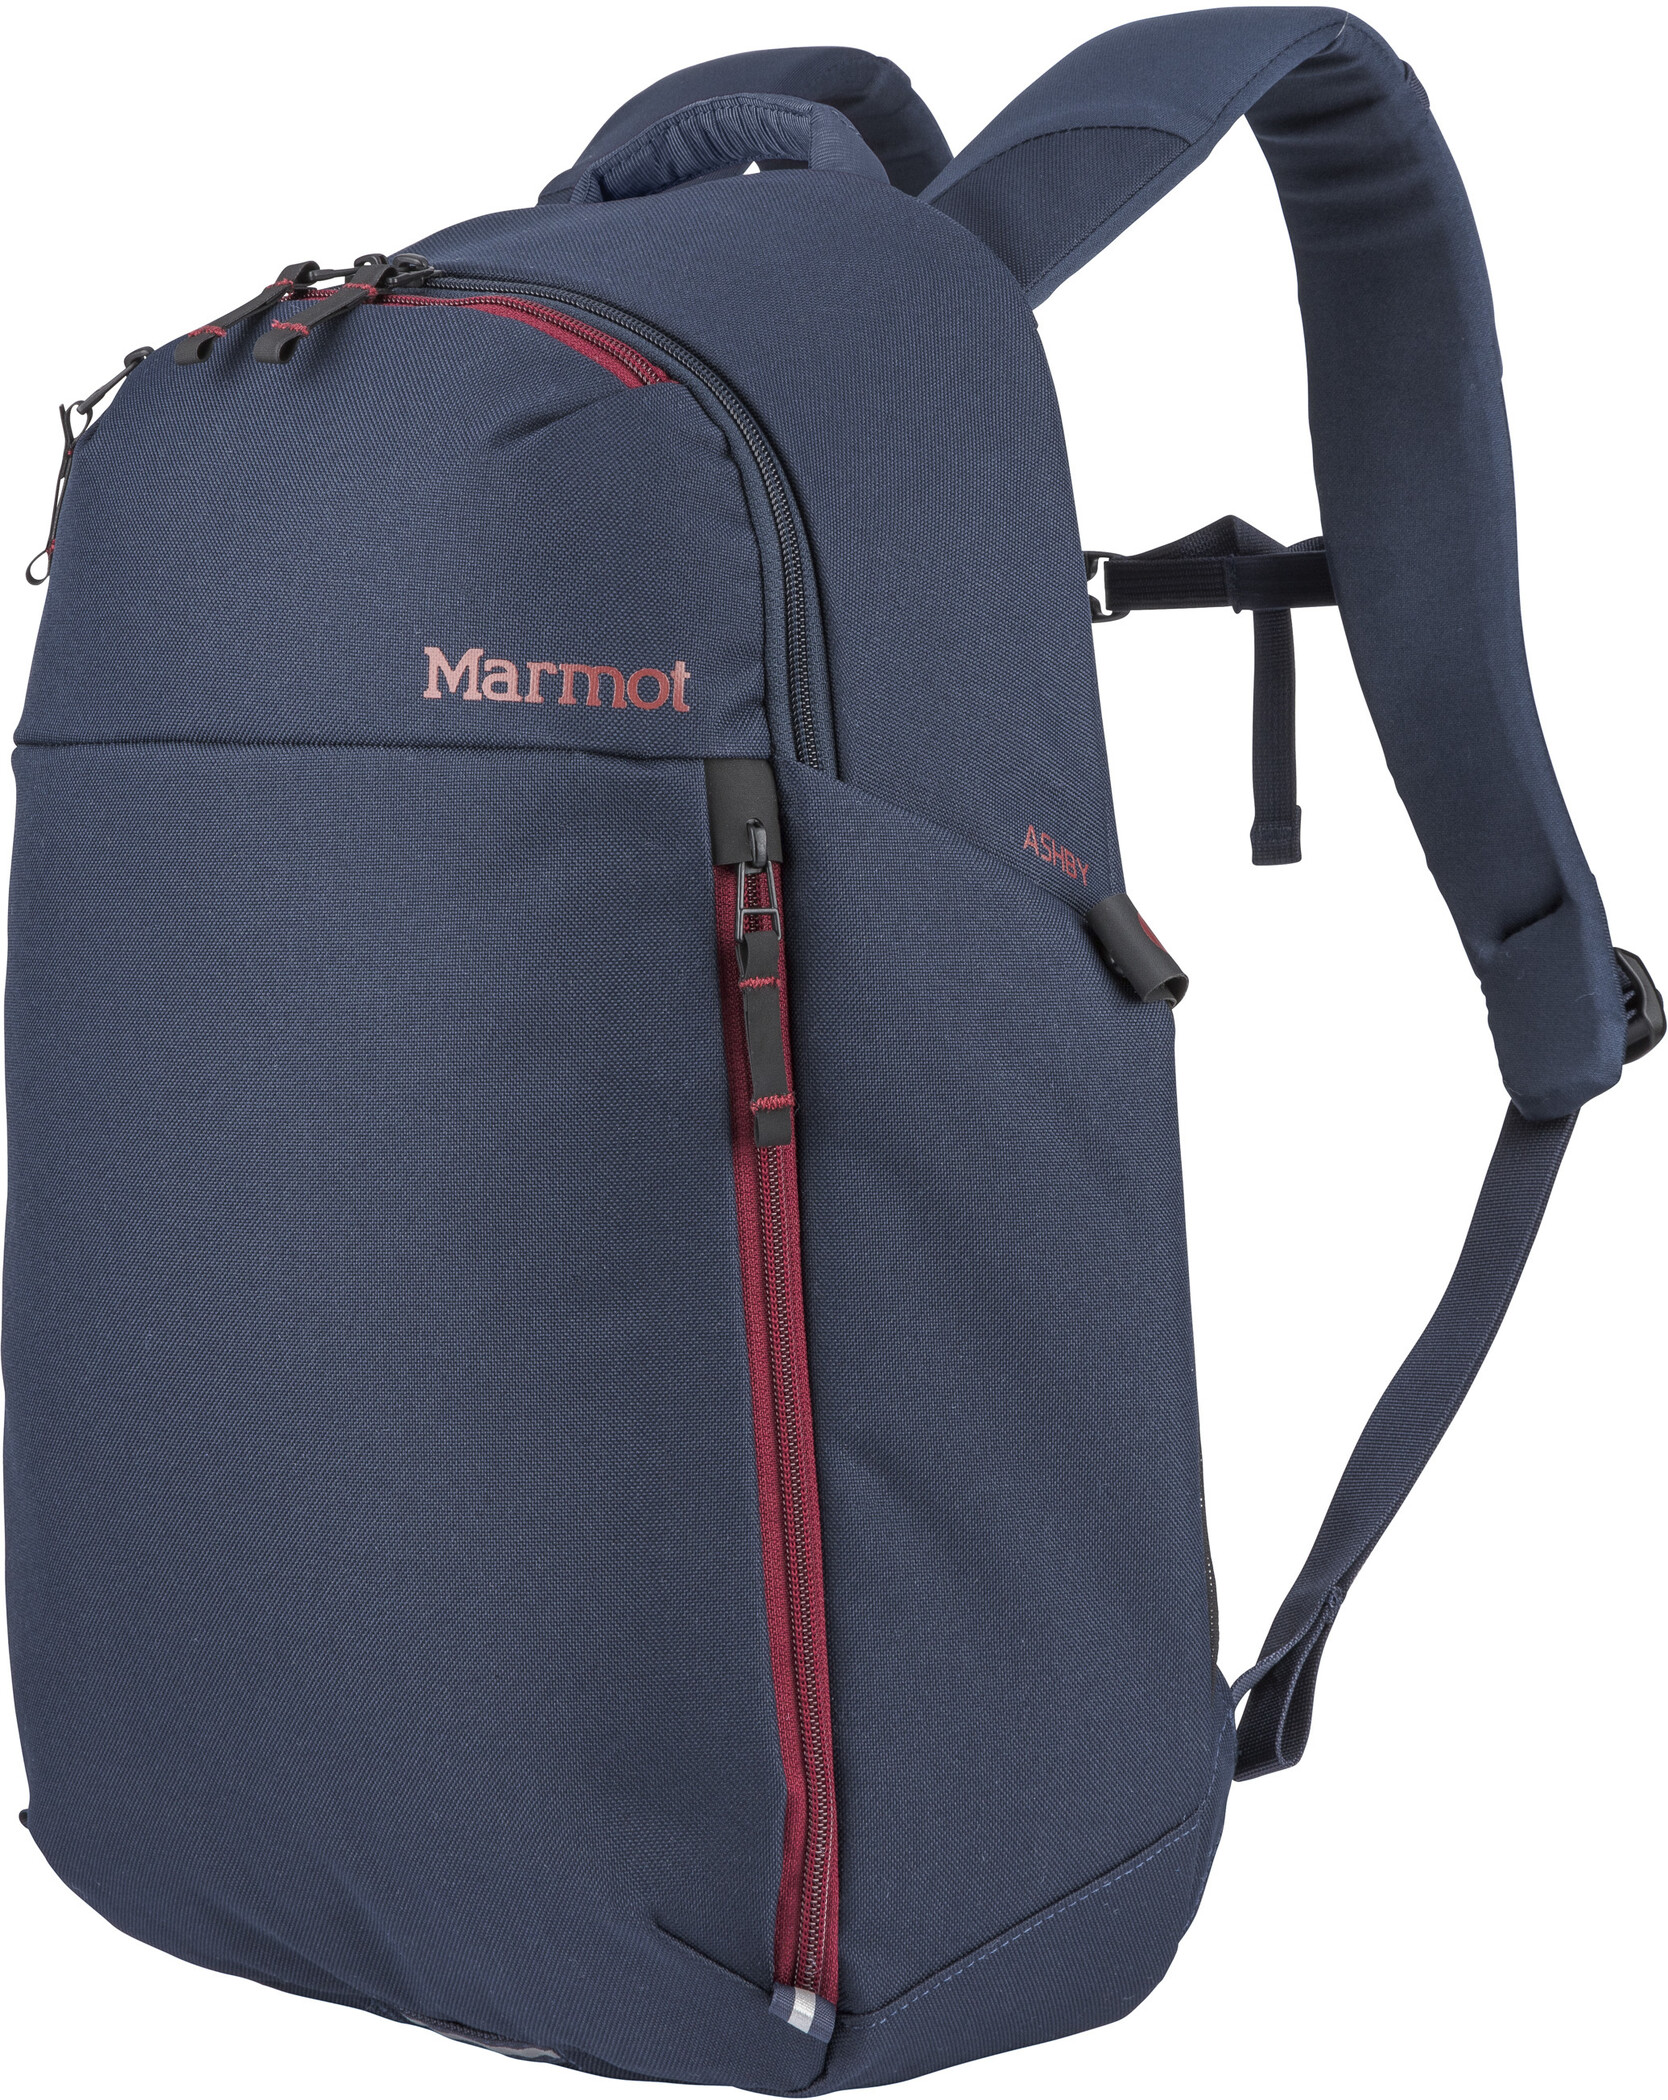 Marmot Ashby Rygsæk, total eclipse/claret (2019) | Travel bags